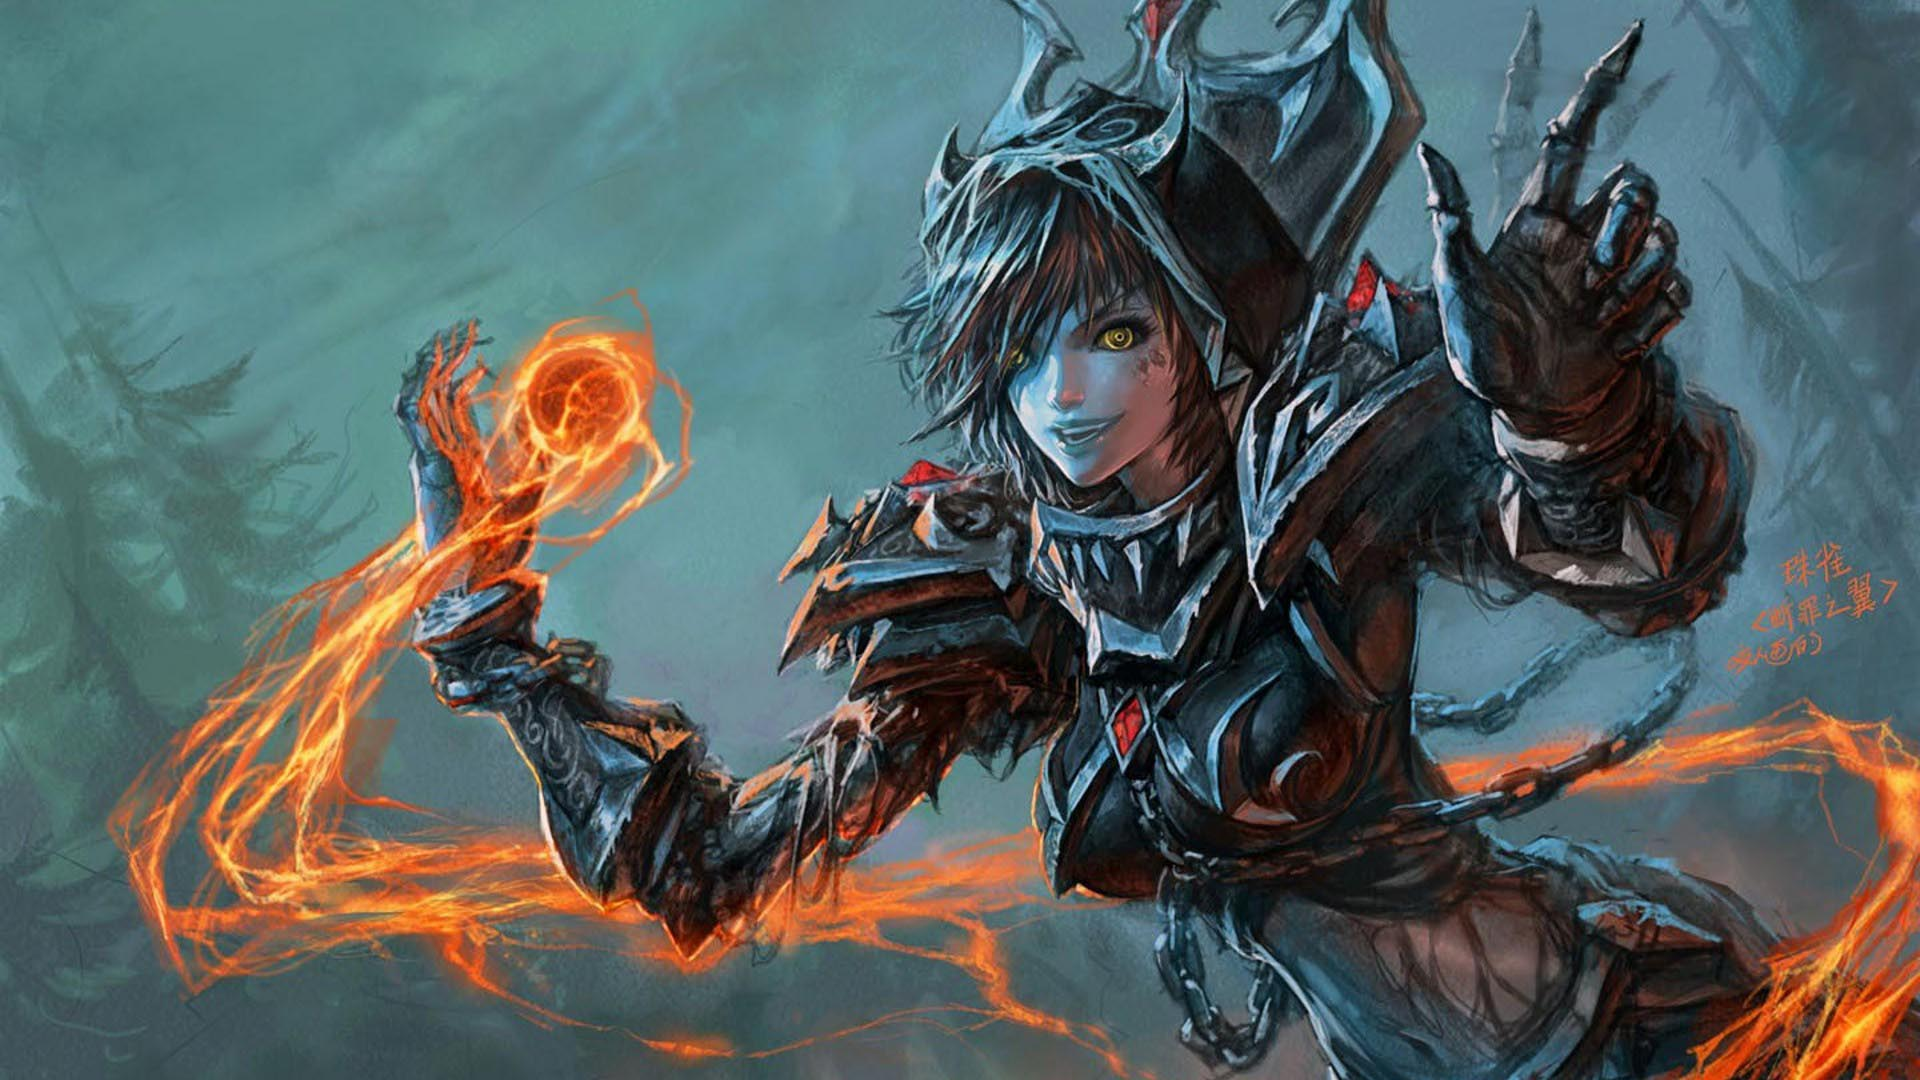 of World of Warcraft 1980 x 1080px Fans of World of Warcraft 1920x1080